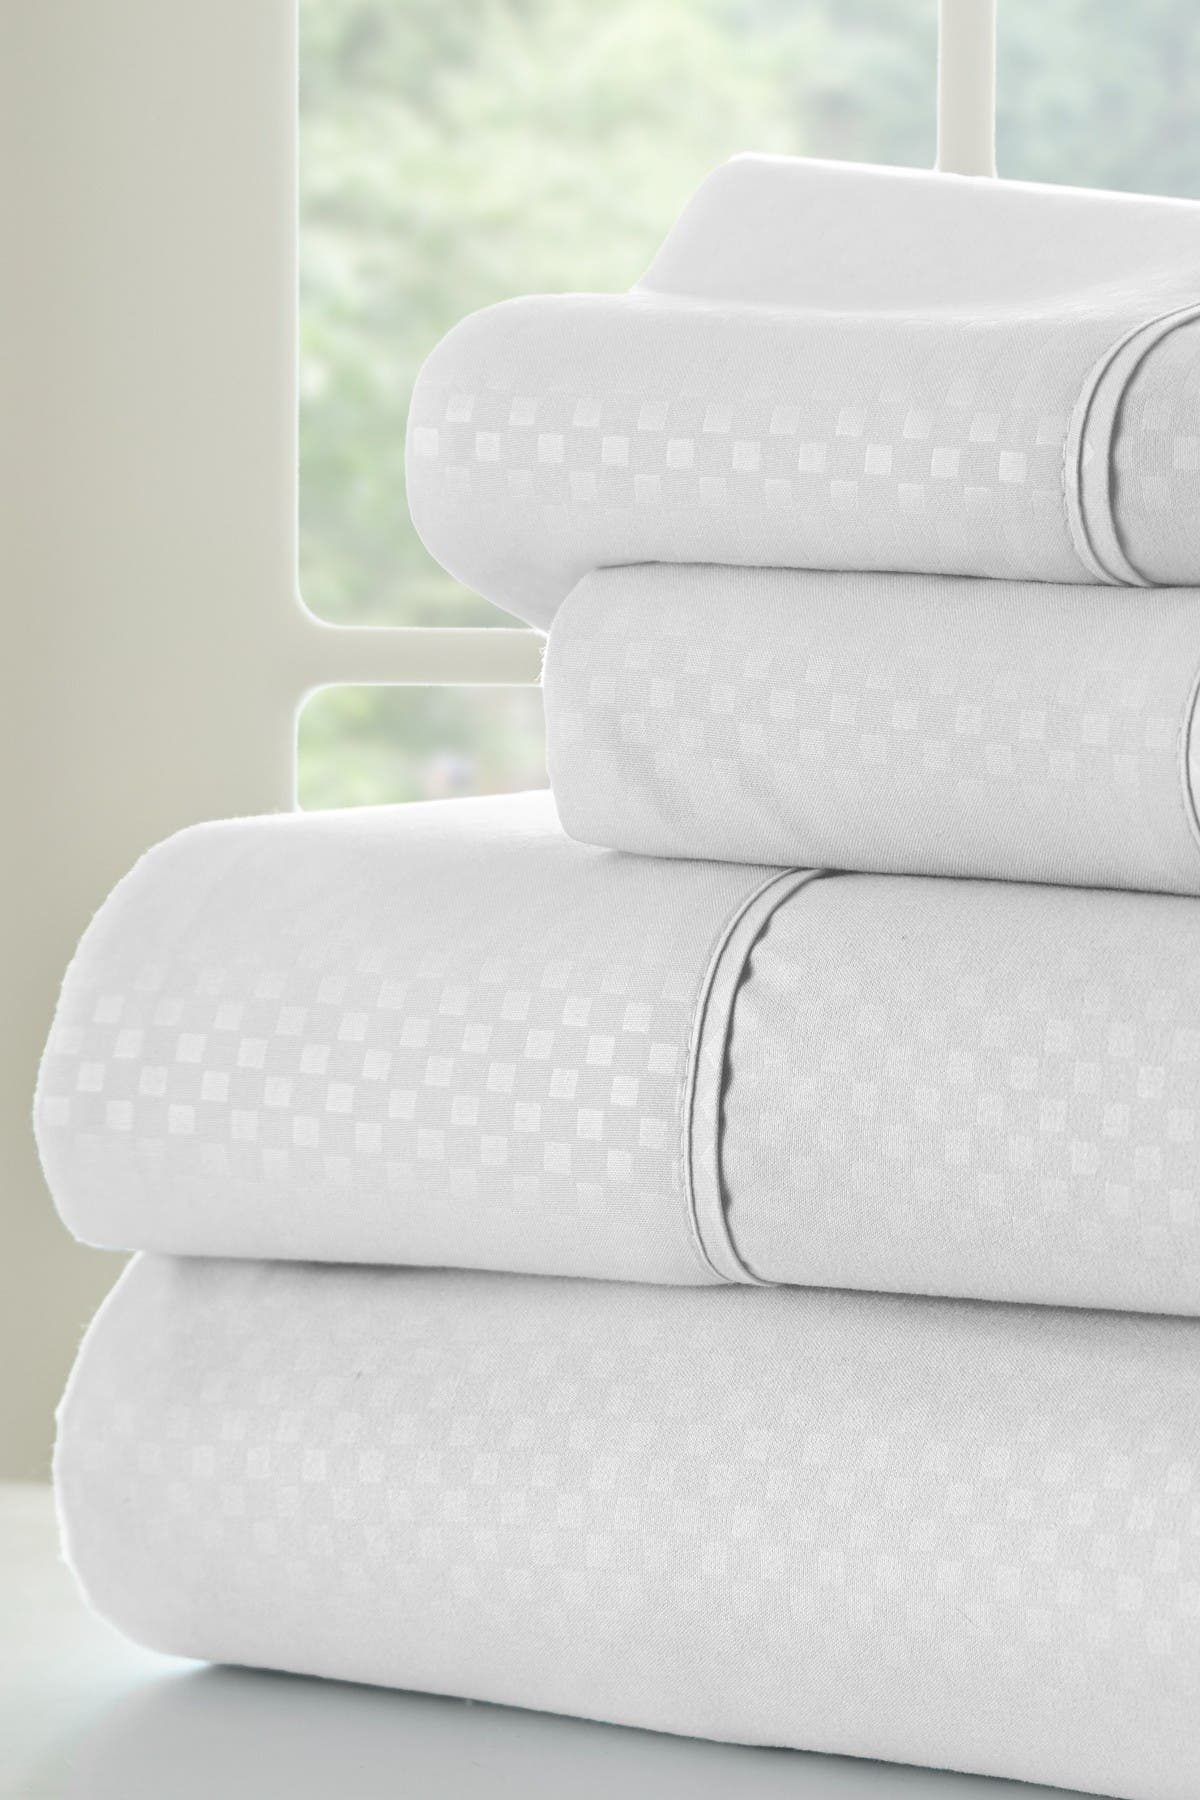 Image of IENJOY HOME Hotel Collection Premium Ultra Soft 4-Piece Checkered Queen Bed Sheet Set -White